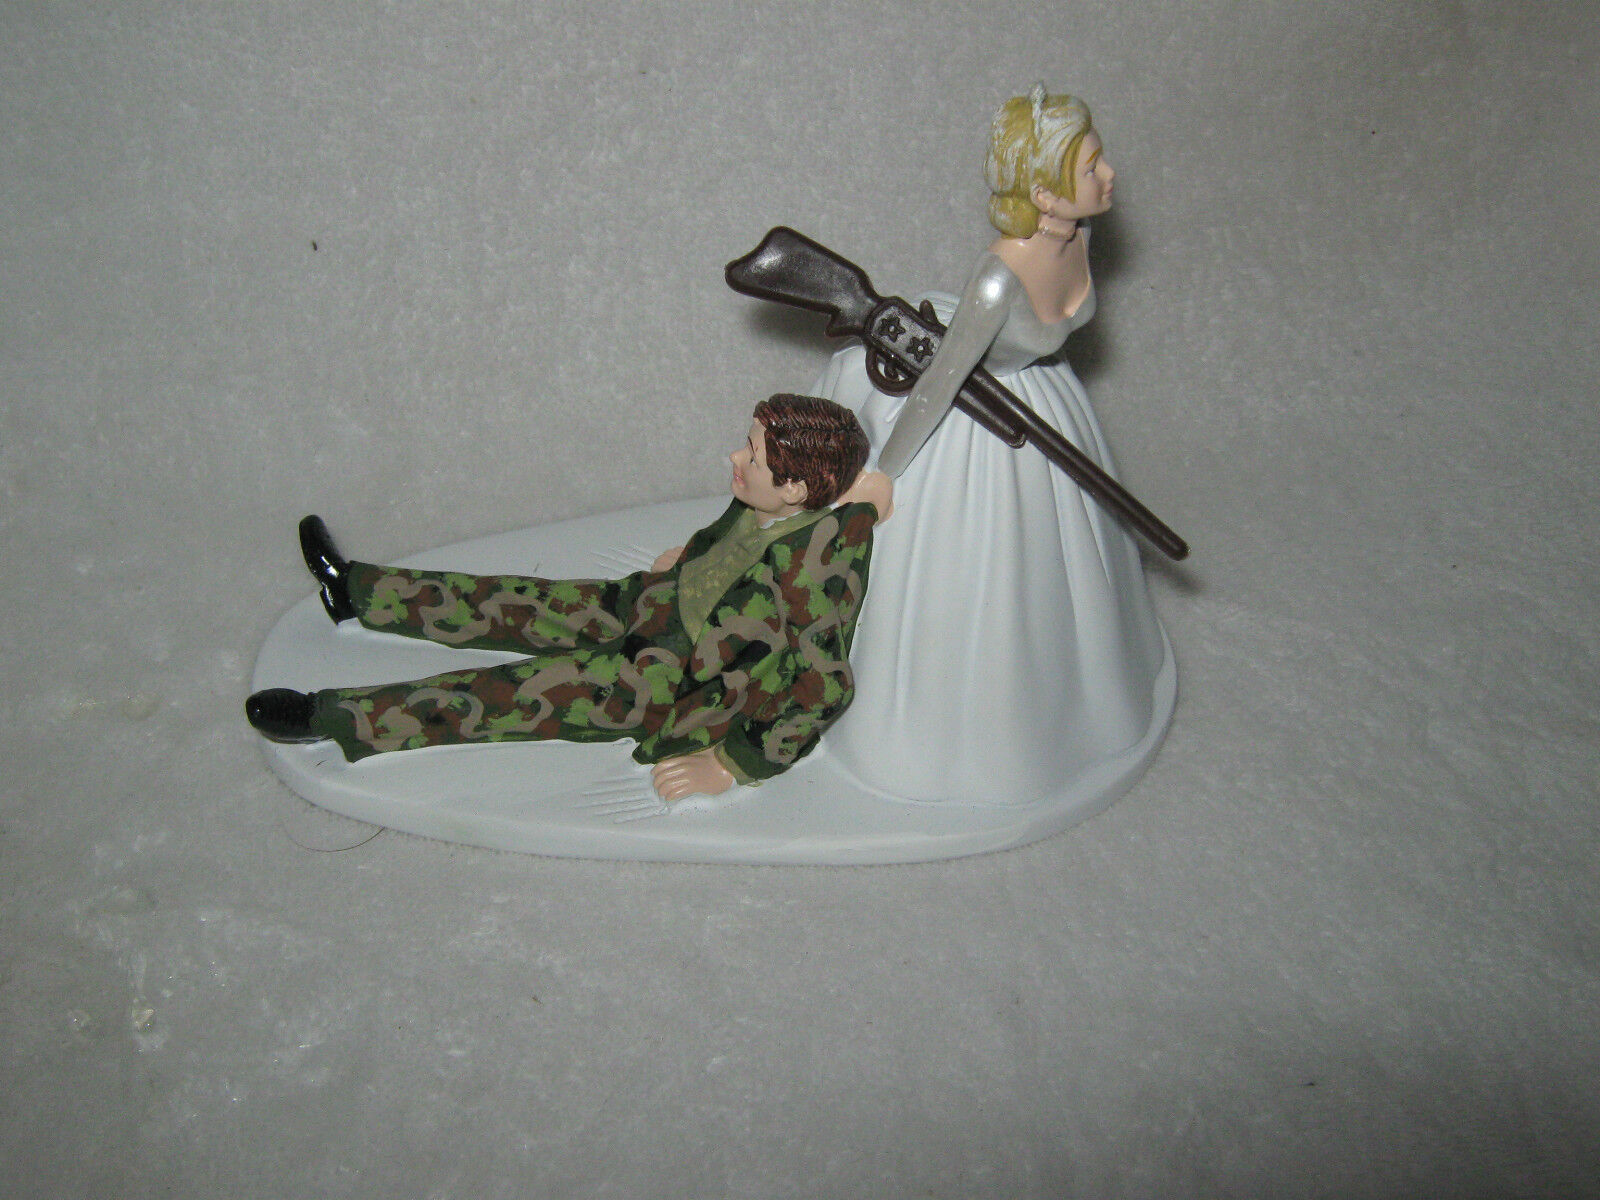 Funny Wedding Cake Toppers Hunting Camo wedding car release date